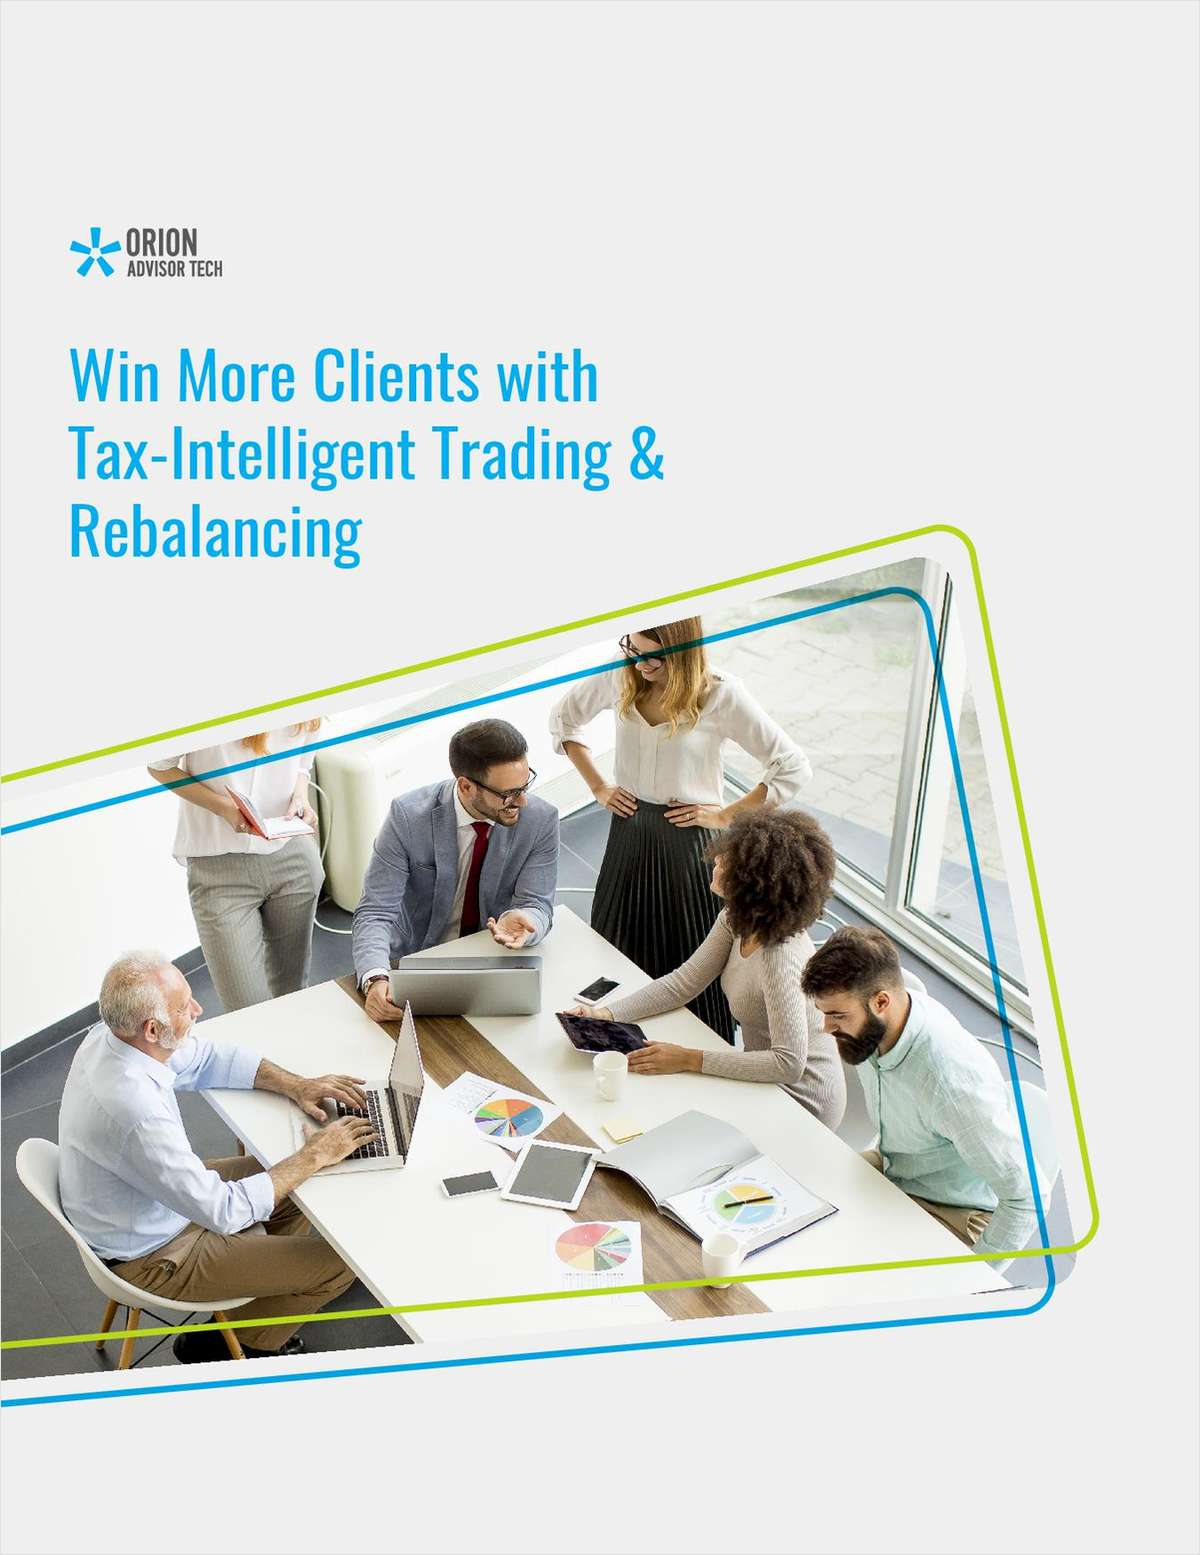 Win More Clients with Tax-Intelligent Trading and Rebalancing